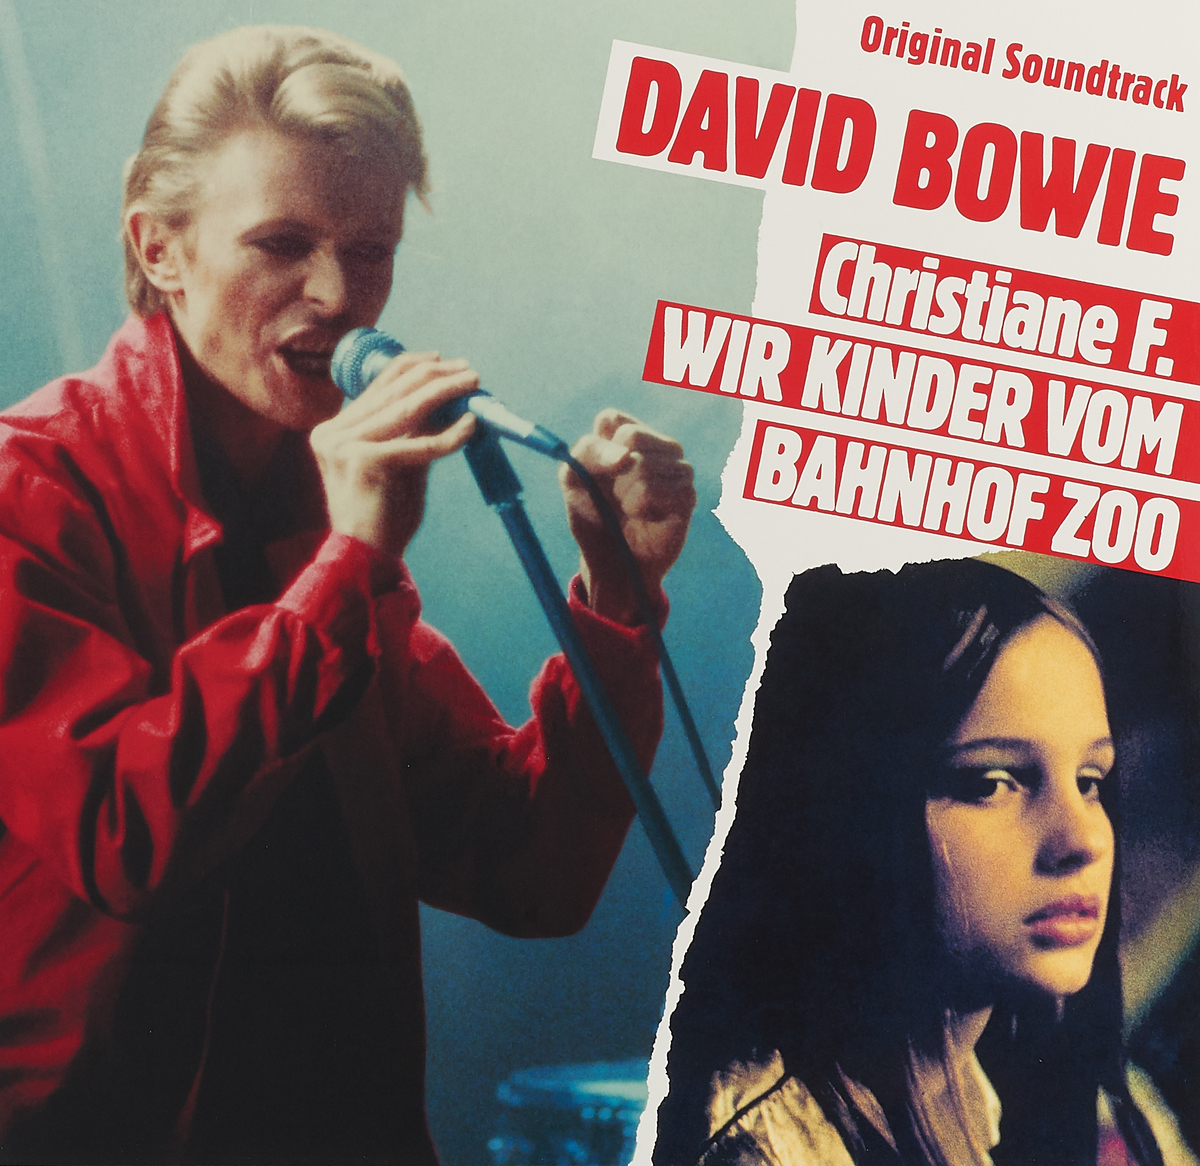 все цены на Дэвид Боуи David Bowie. Christiane F. Wir Kinder Vom Bahnhof Zoo (Coloured Vinyl) (LP)